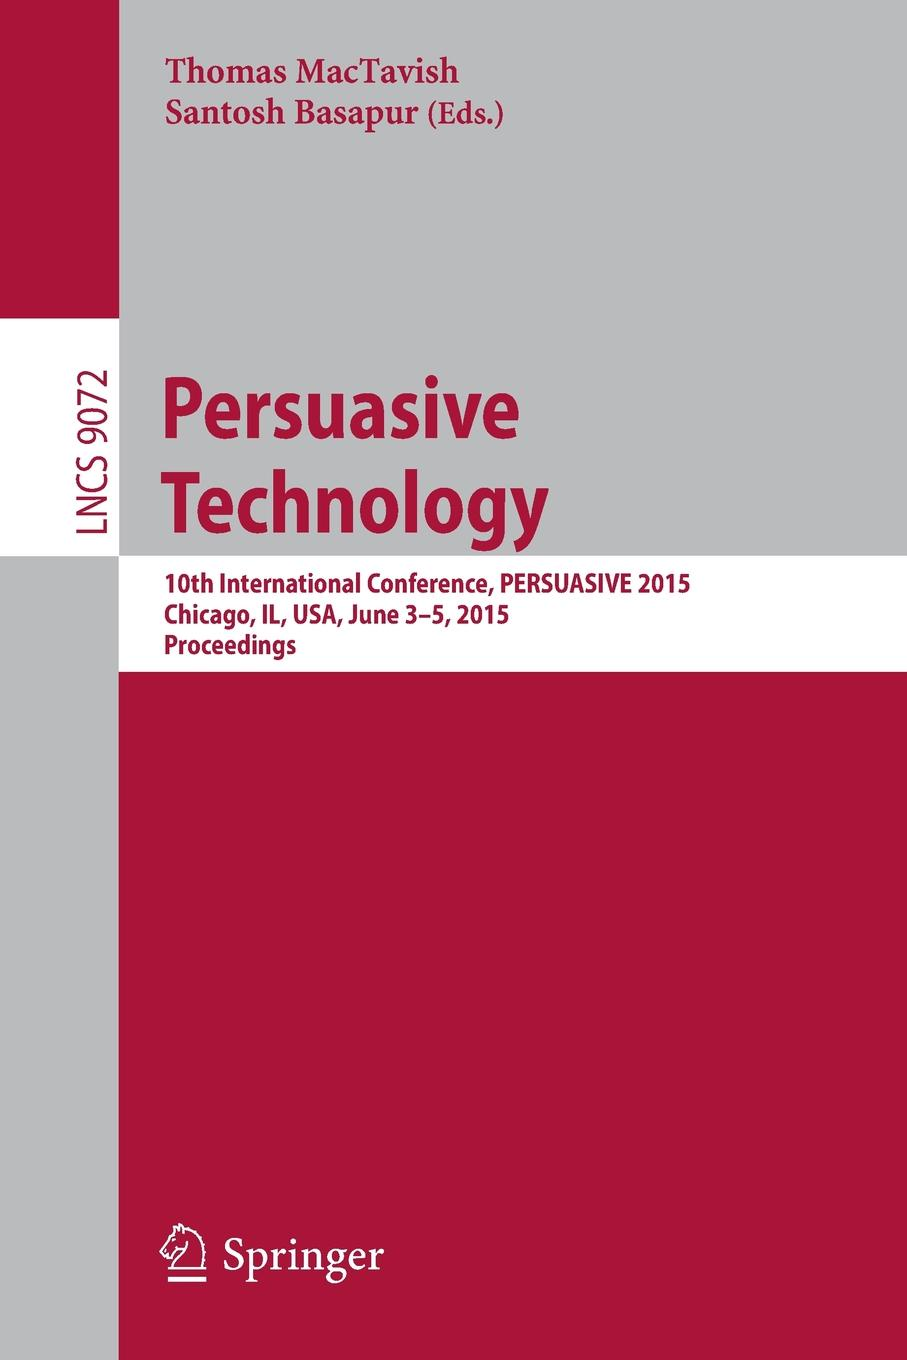 Persuasive Technology. 10th International Conference, PERSUASIVE 2015, Chicago, IL, USA, June 3-5, Proceedings